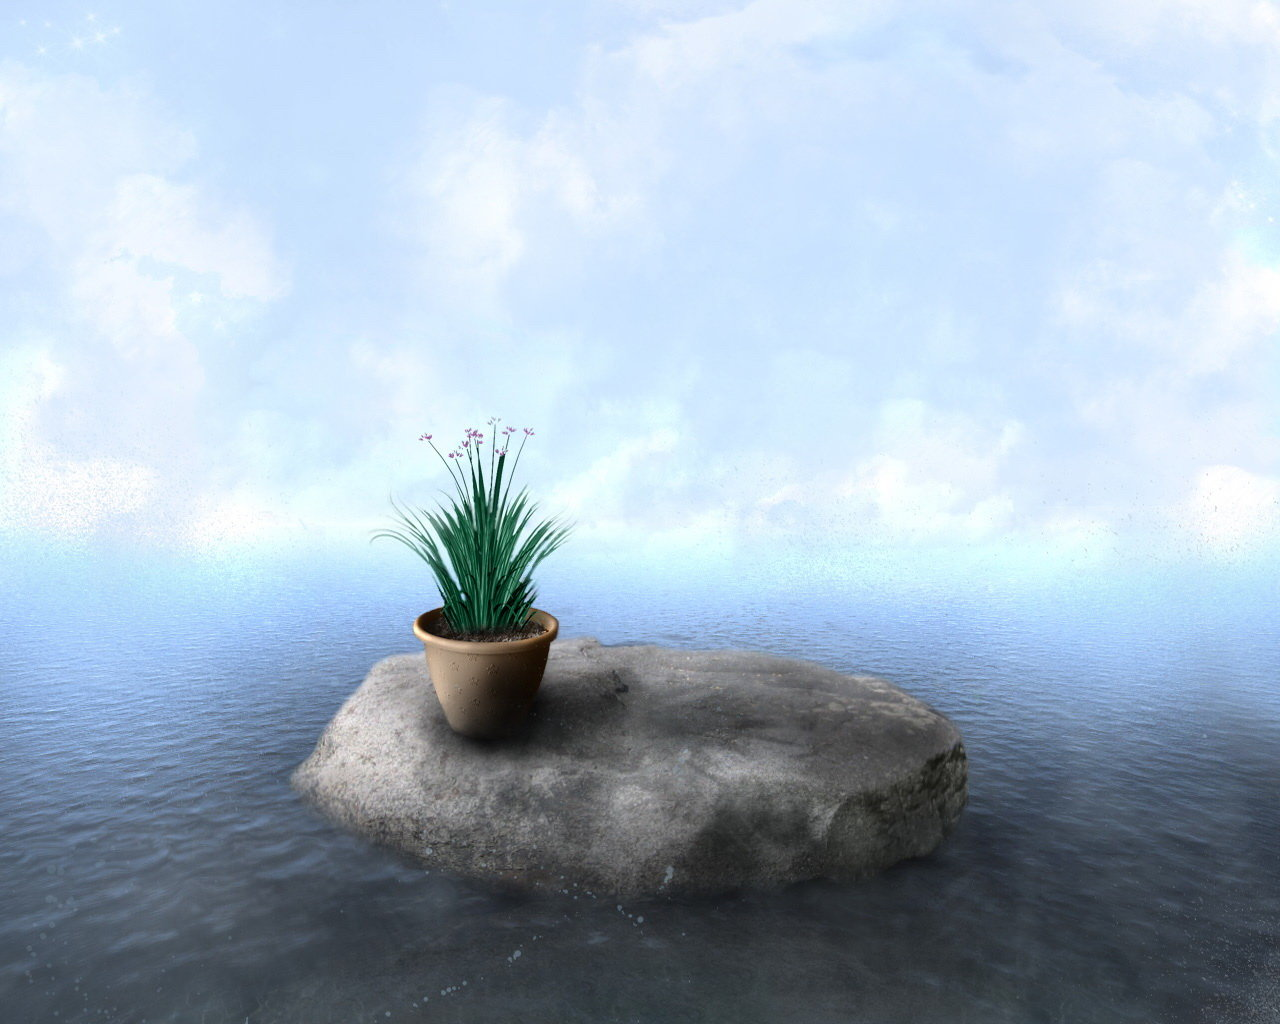 Tranquil wallpapers 1280x1024 desktop backgrounds - Wallpapers pc ...